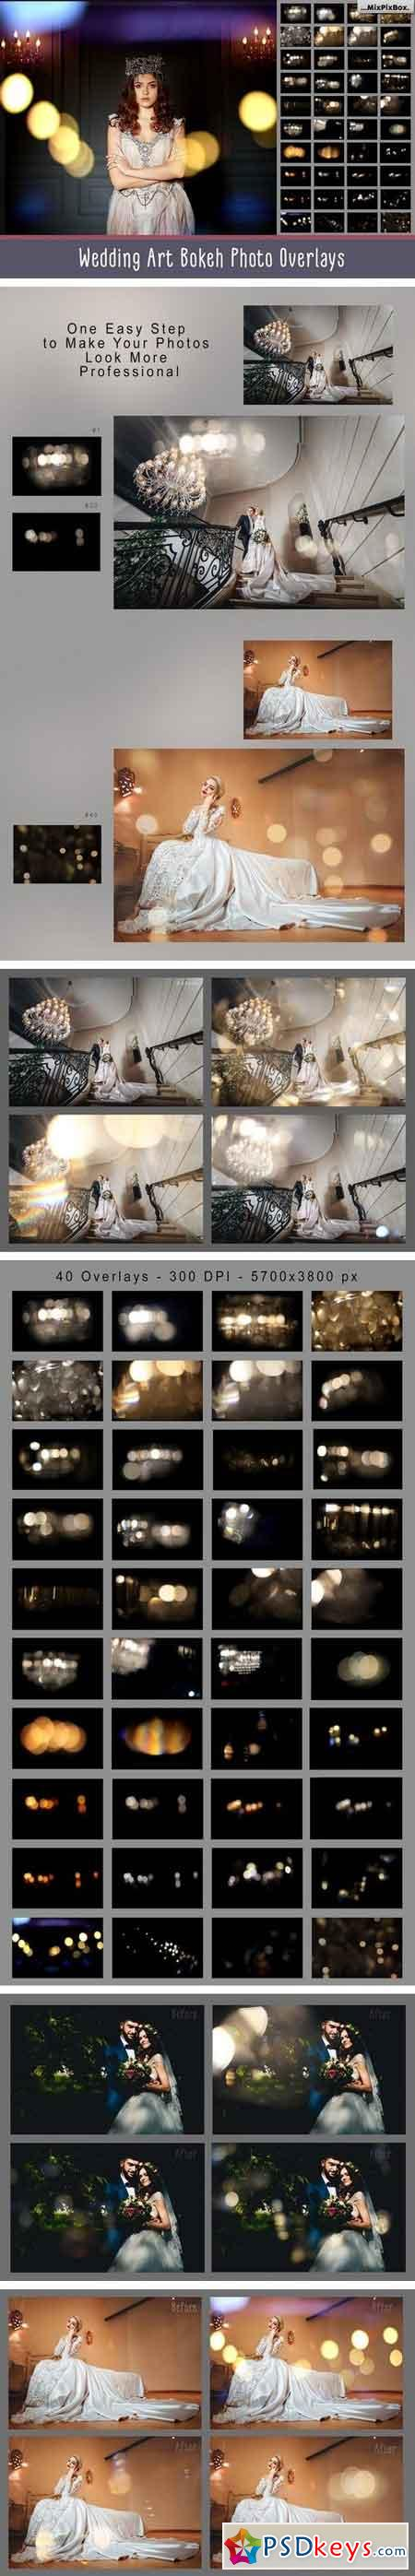 Wedding Art Bokeh Photo Overlays 1520527